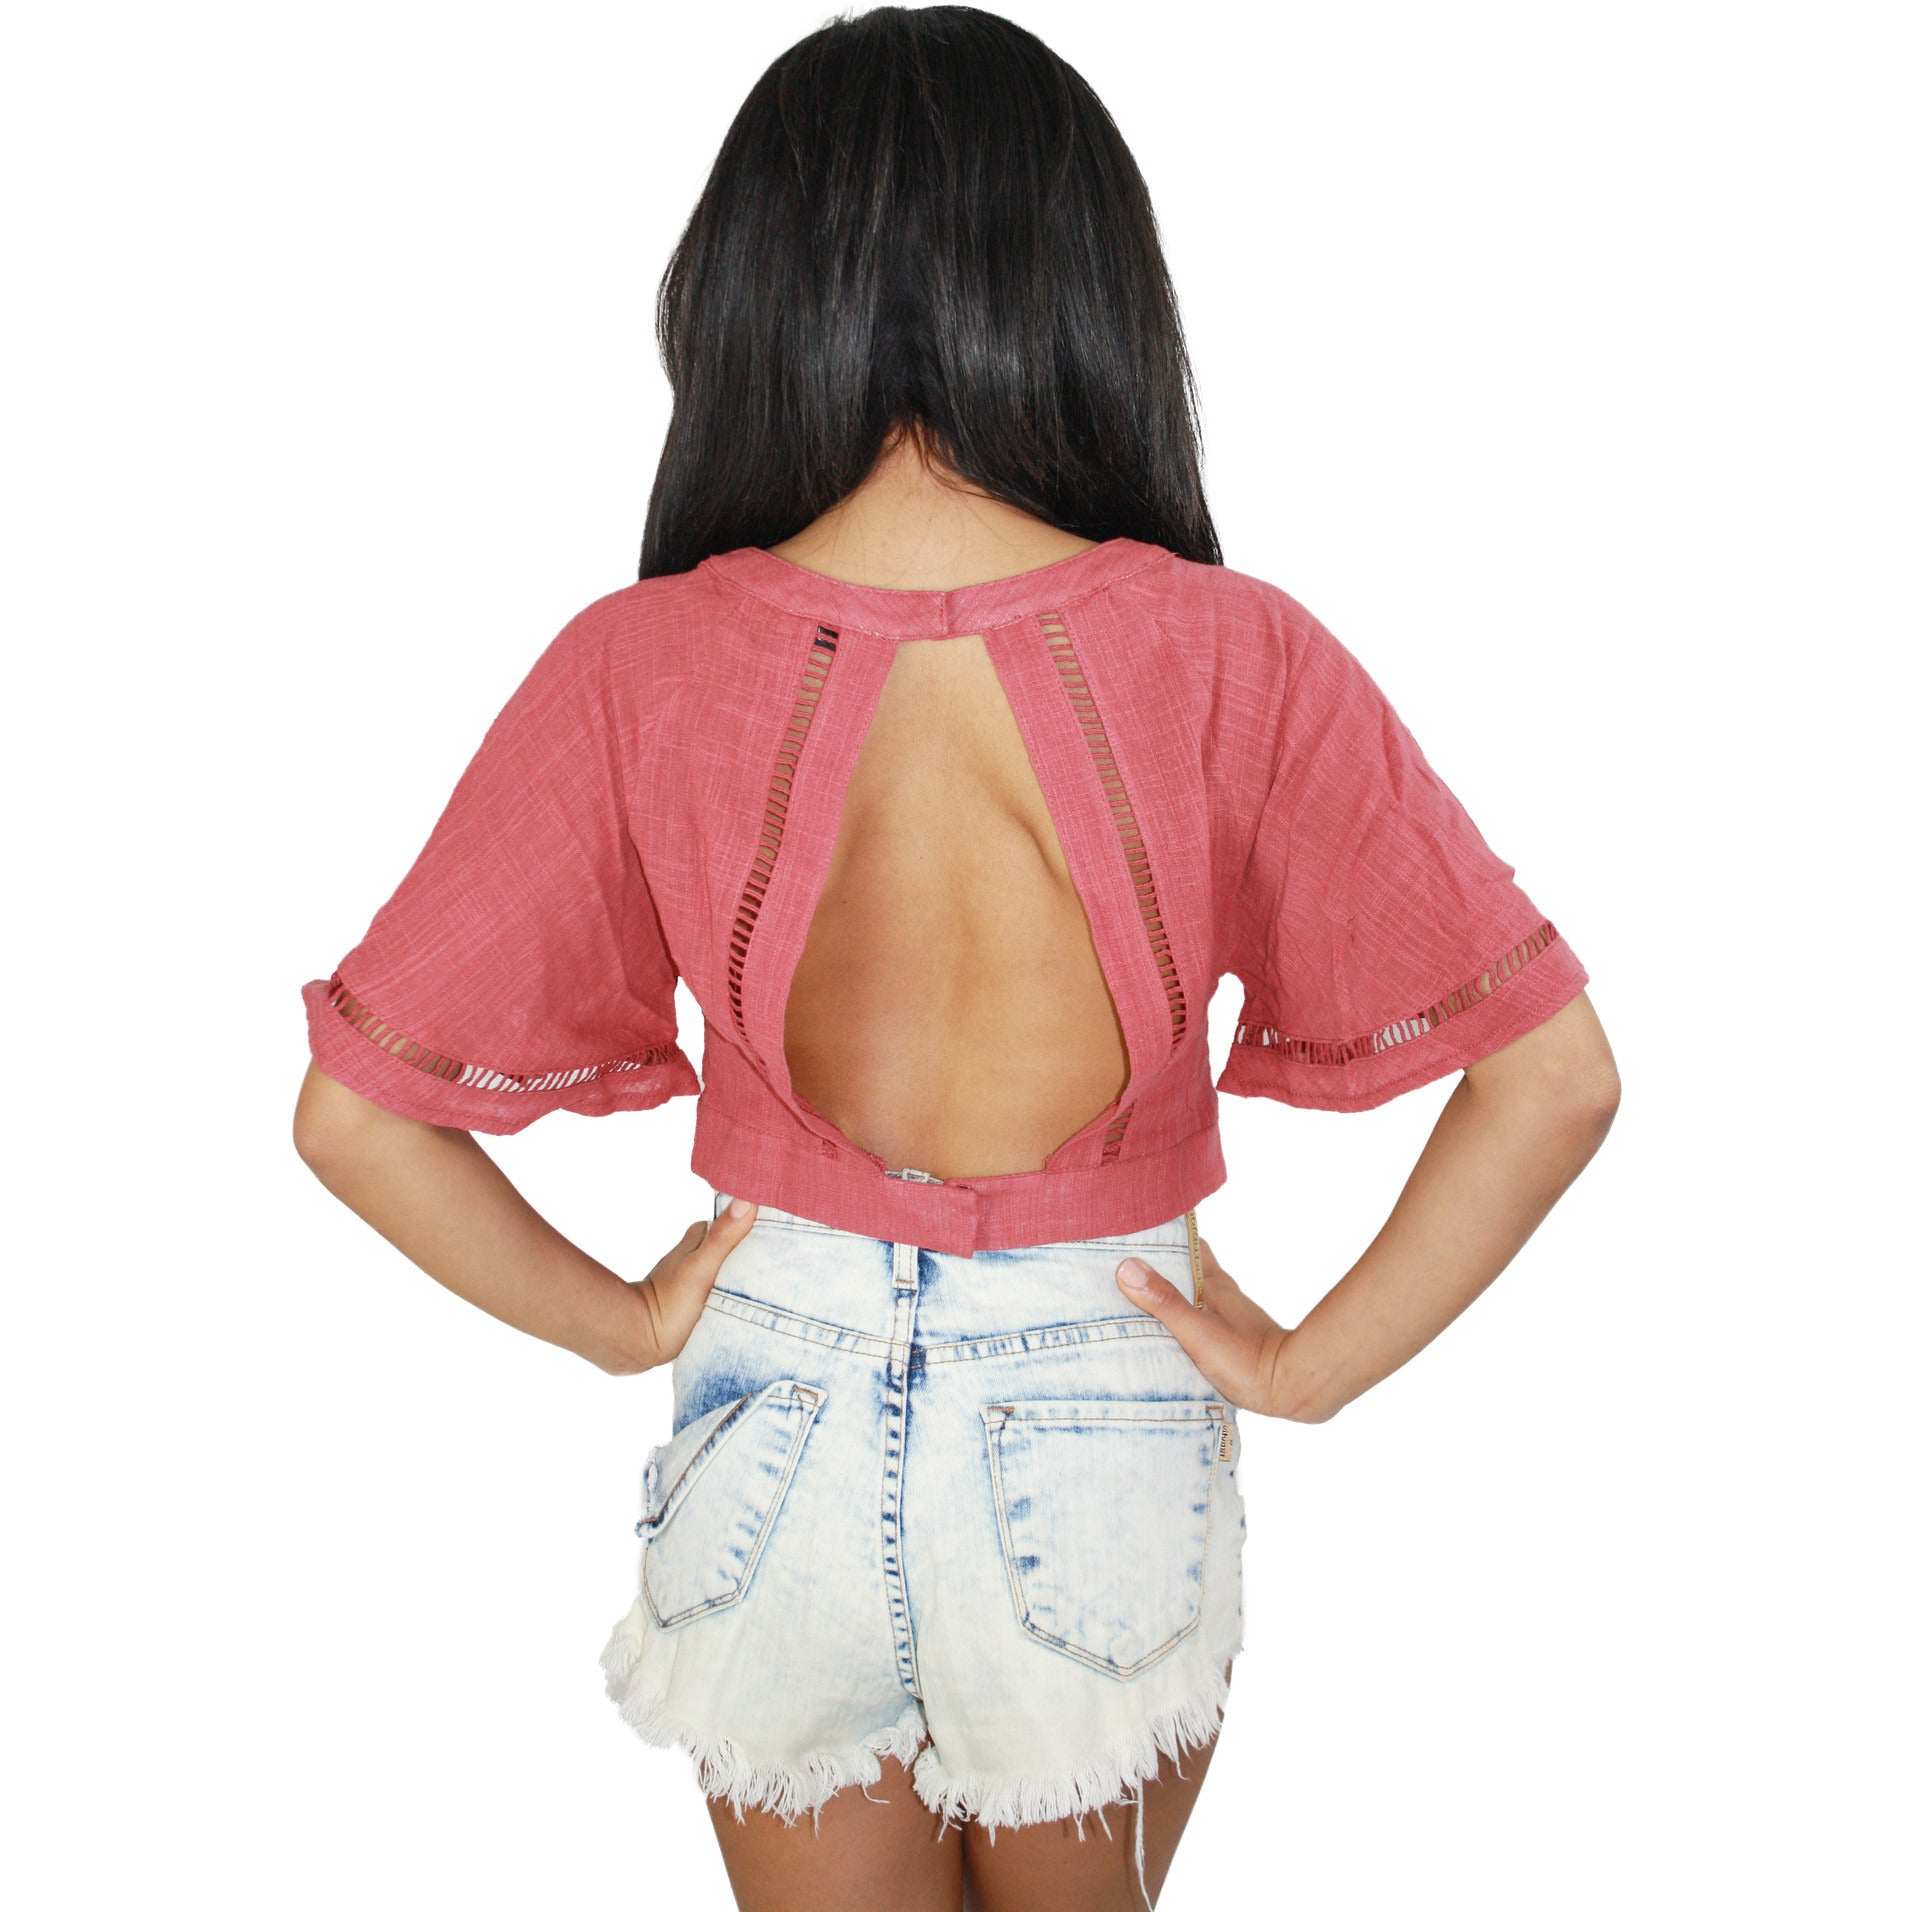 Ladder Trim Woven Crop Top in Marsala